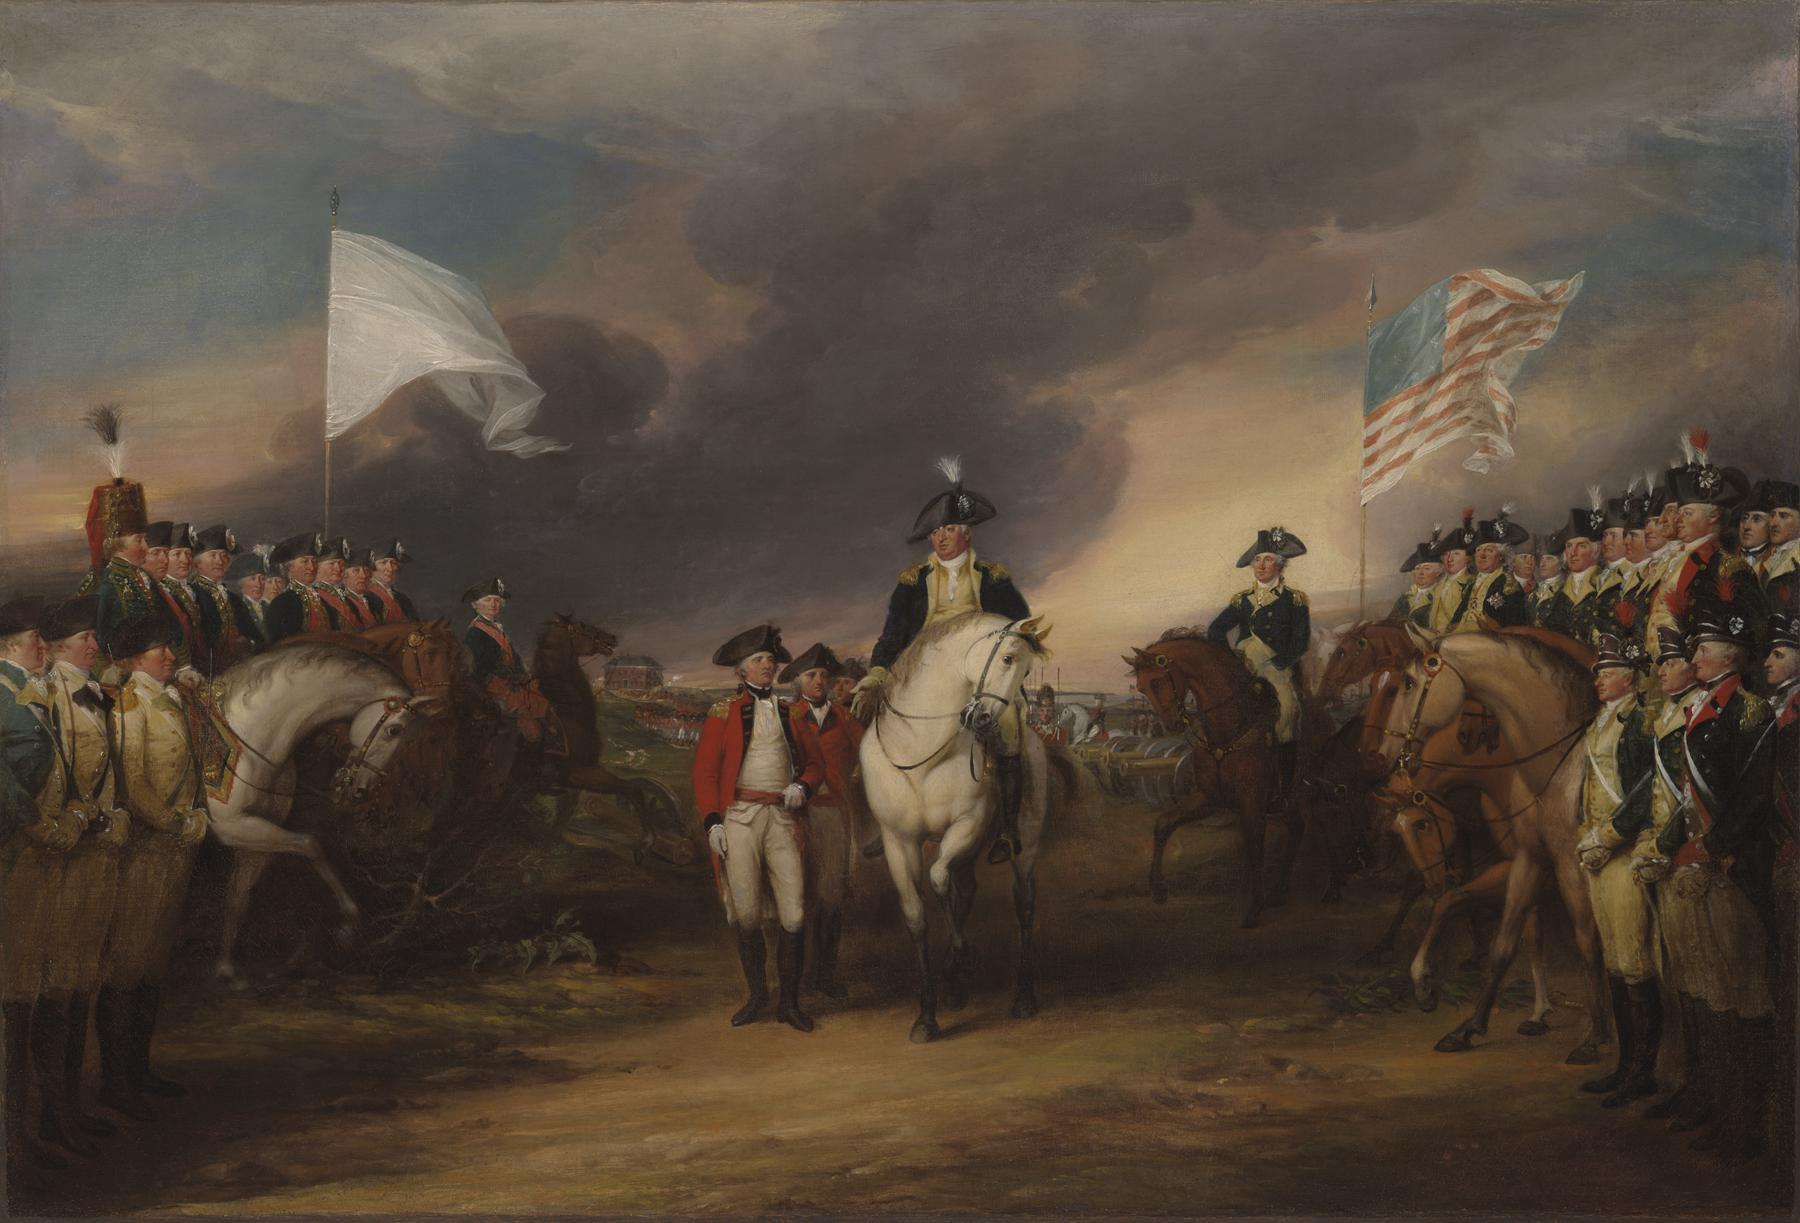 The Last Joint American-French Military Operation Was During the Revolutionary War